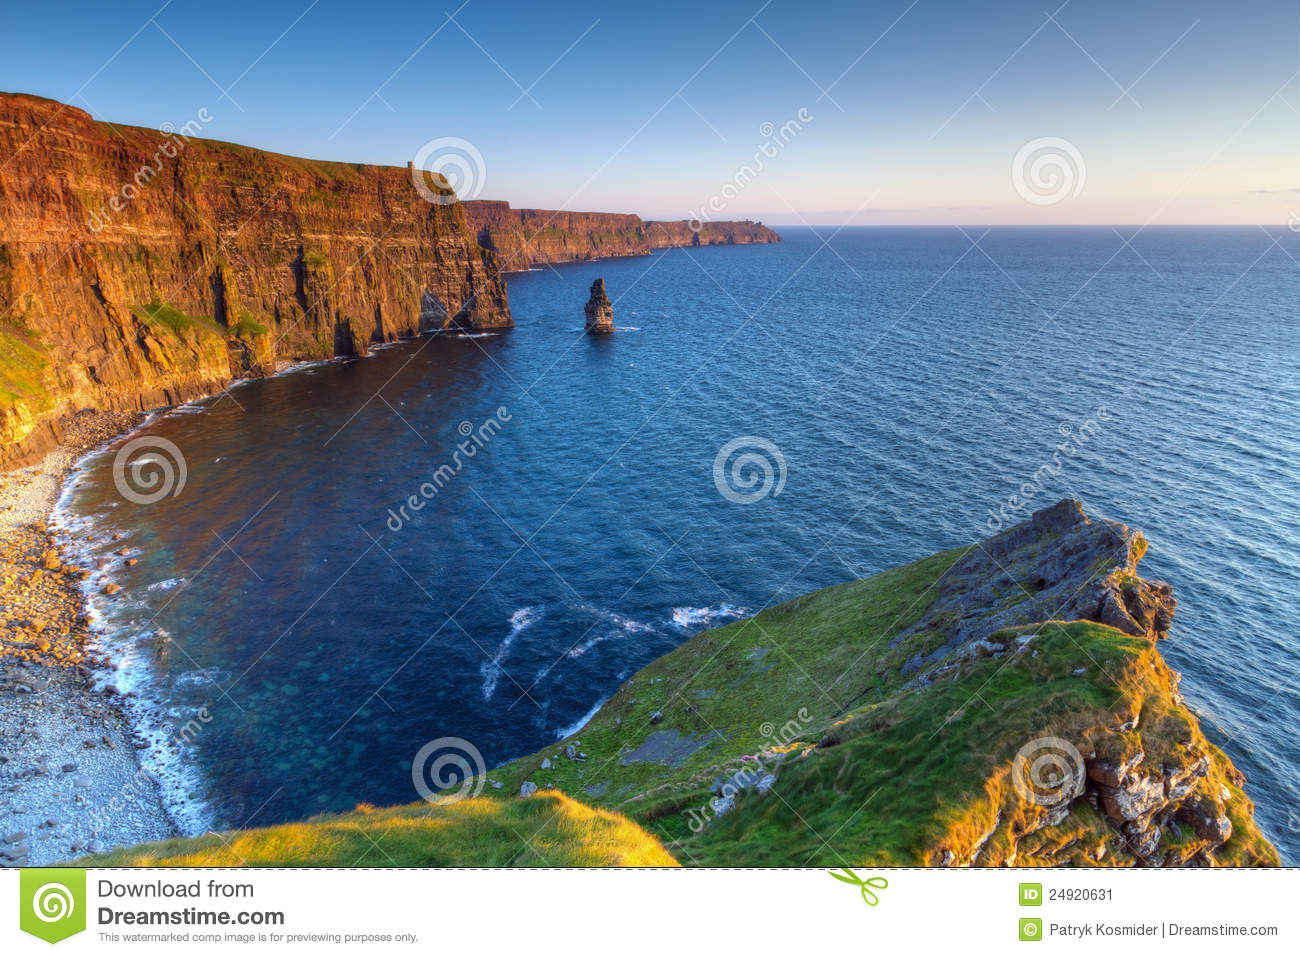 Cliffs Of Moher clipart #6, Download drawings